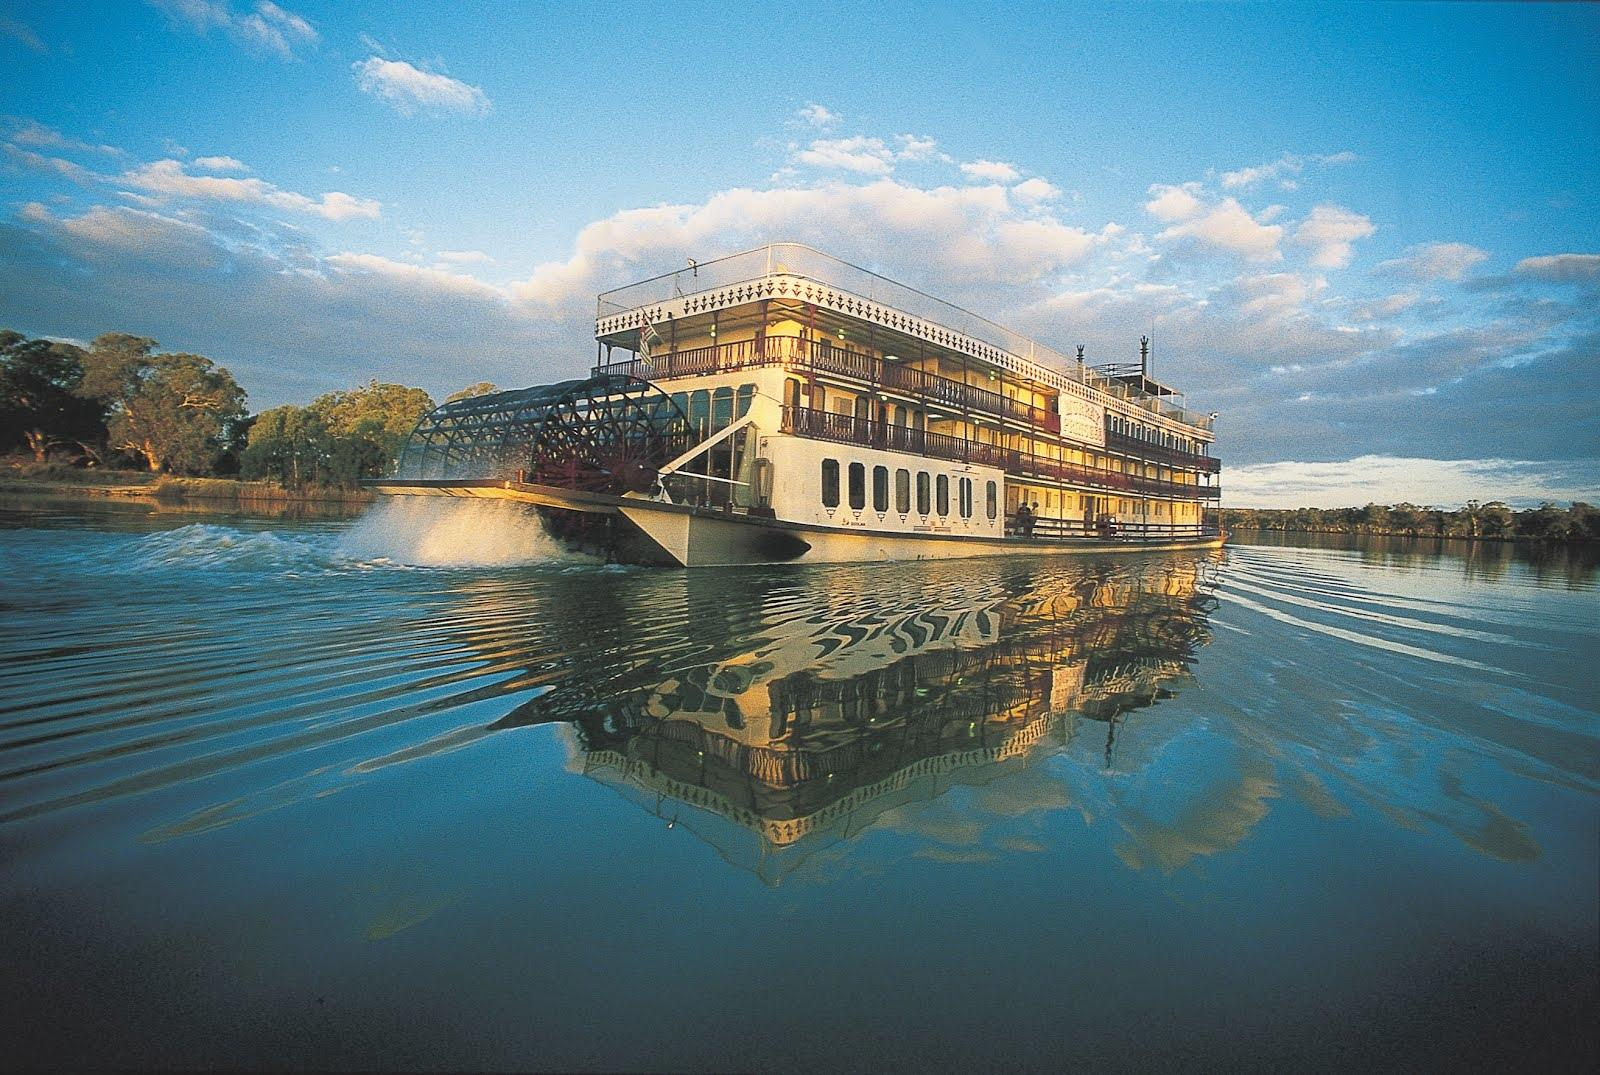 Paddle Steamer wallpapers HD quality